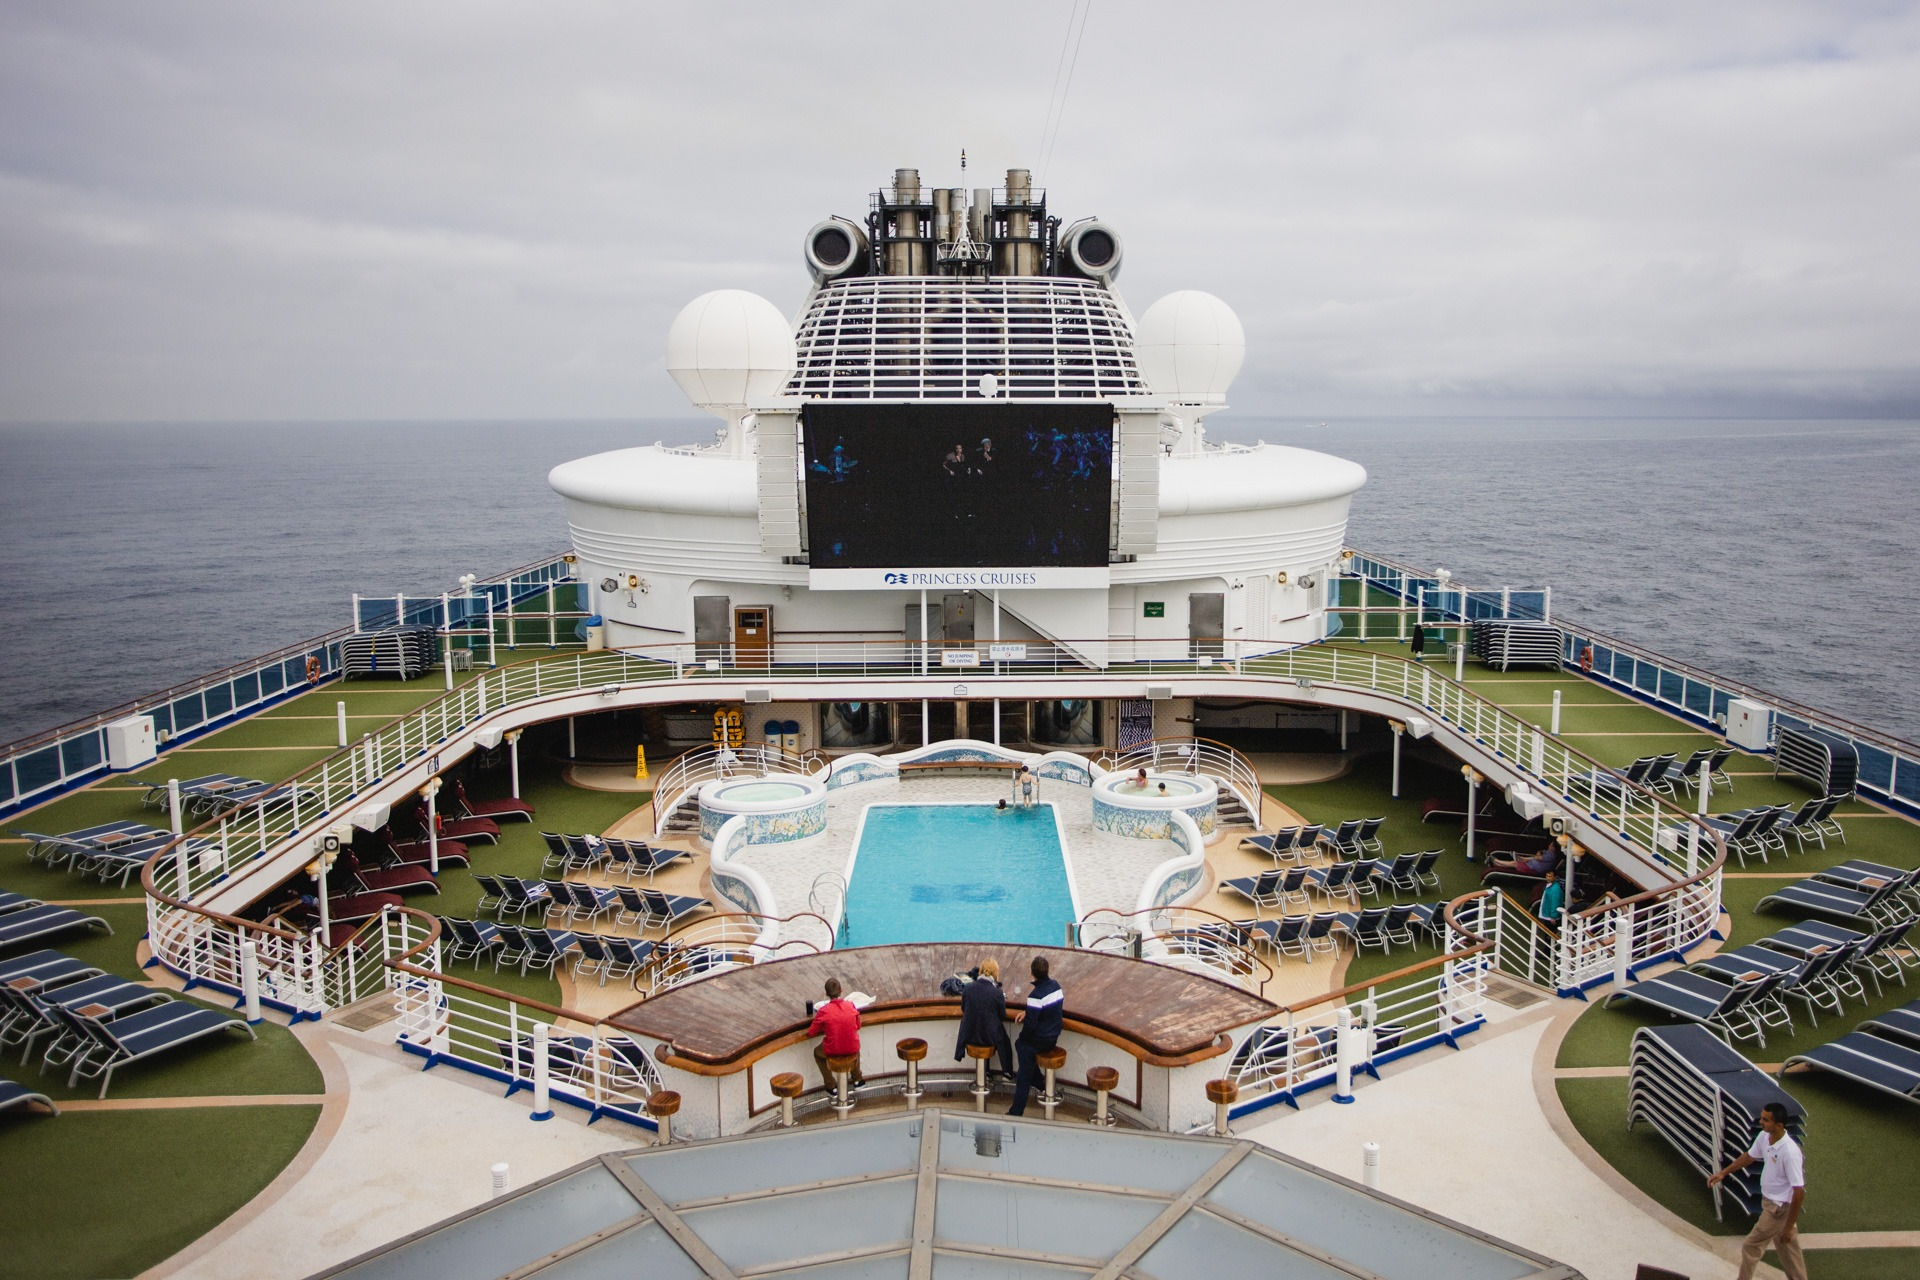 Princess-Cruises-Sapphire-Princess-cruise-ship-swimming-pool